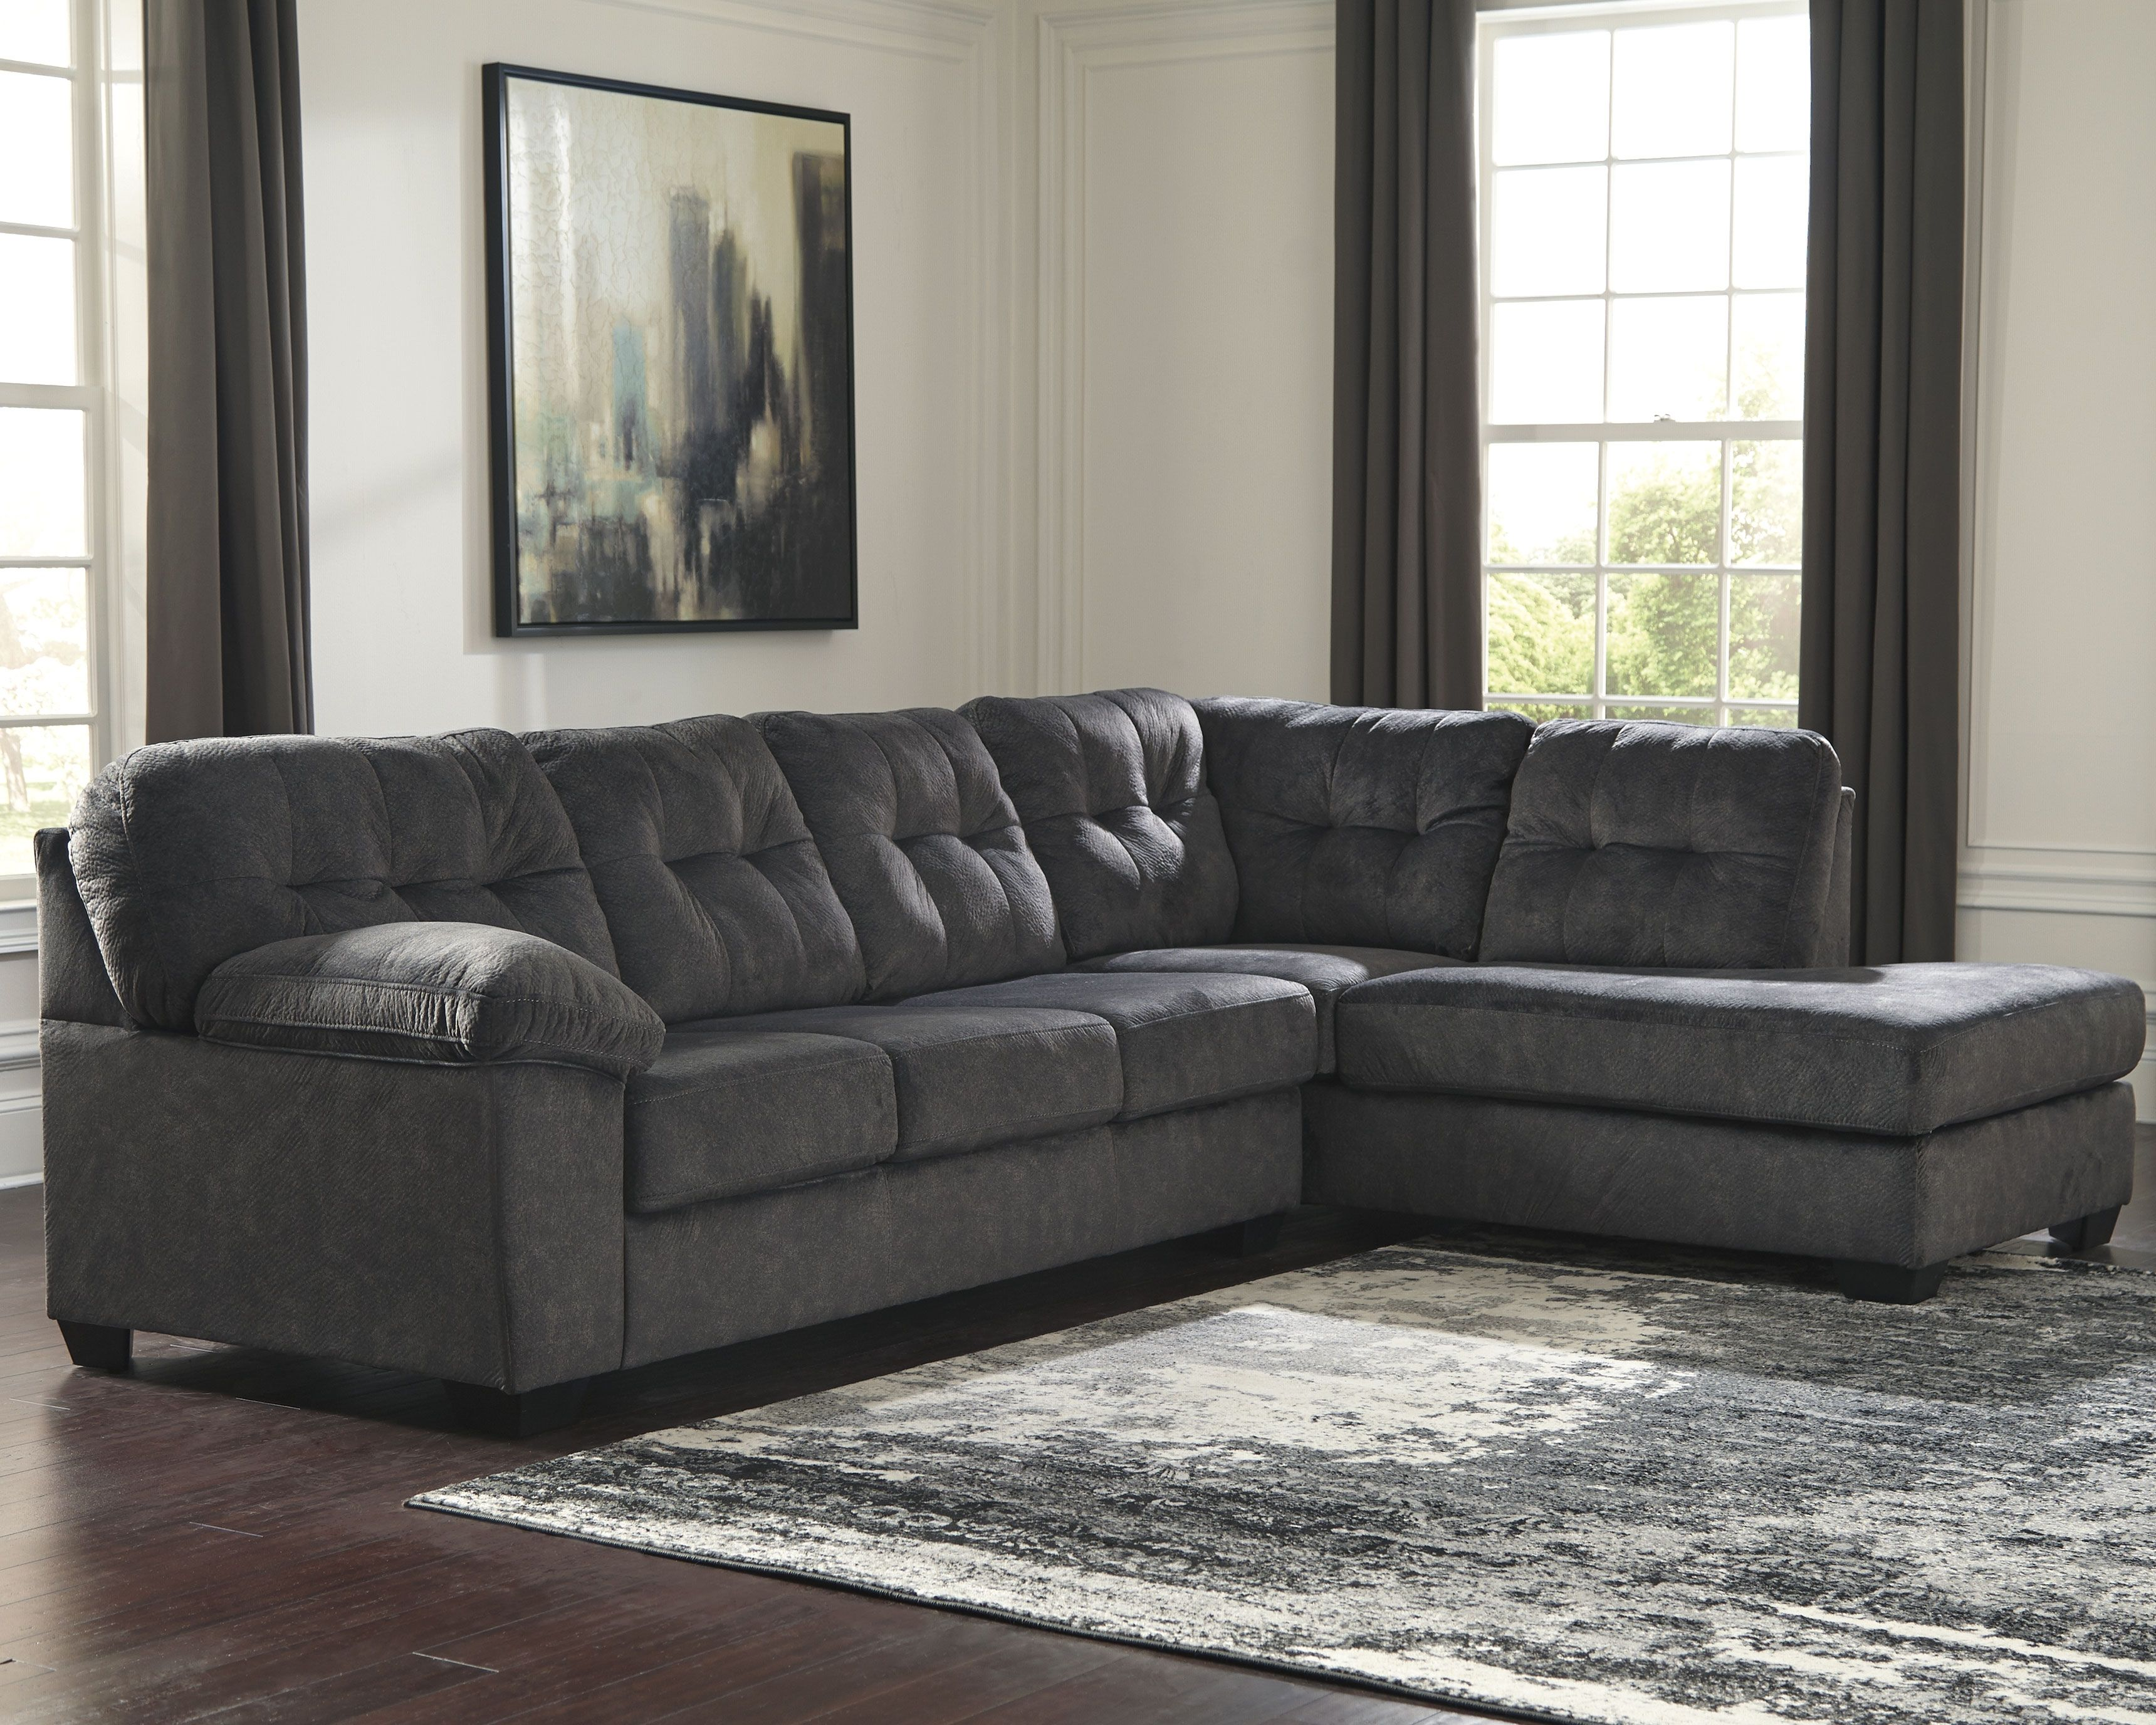 Marvelous Accrington 2 Piece Sectional With Chaise Products In 2019 Gmtry Best Dining Table And Chair Ideas Images Gmtryco